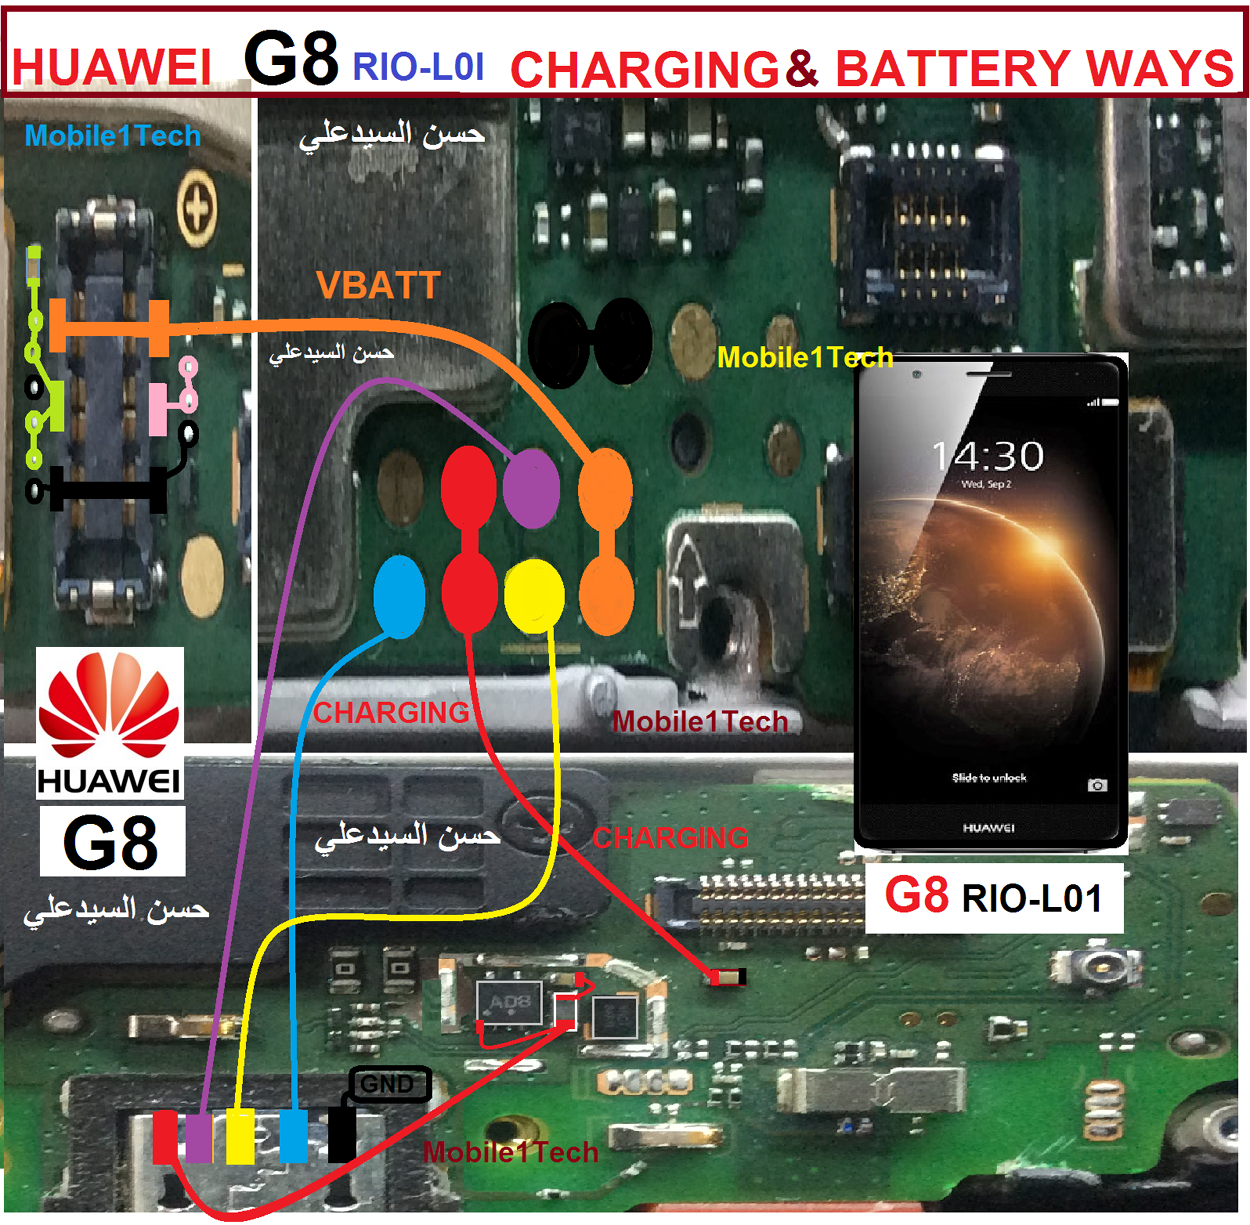 Samsung gt s7262 usb charging problem solution jumper ways - Huawei G8 Usb Charging Problem Solution Jumper Ways